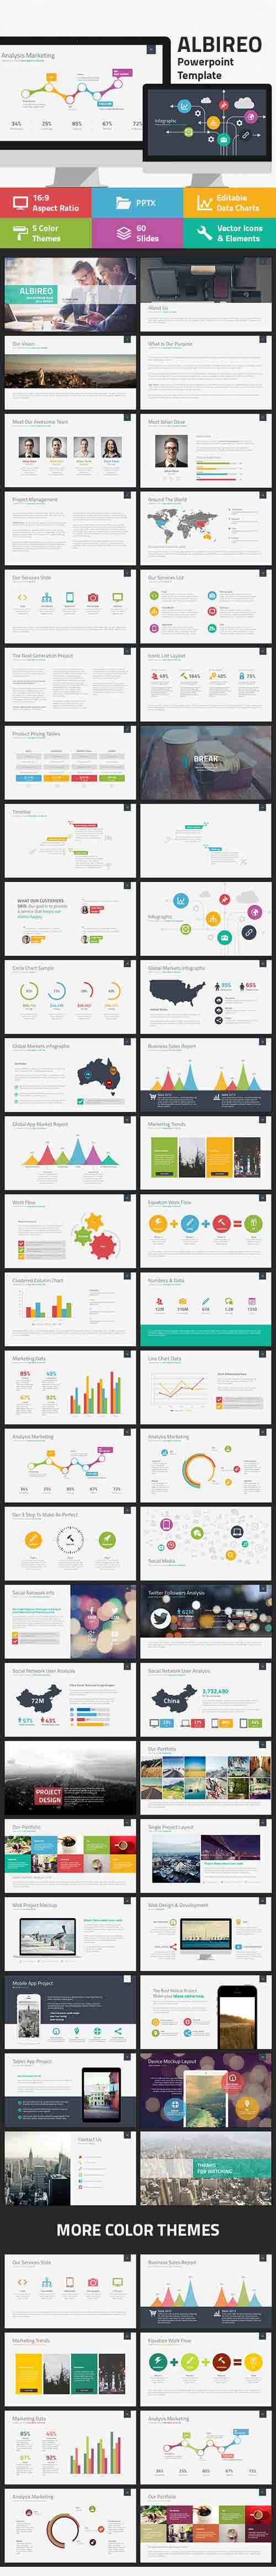 Albireo Powerpoint Template 7826551